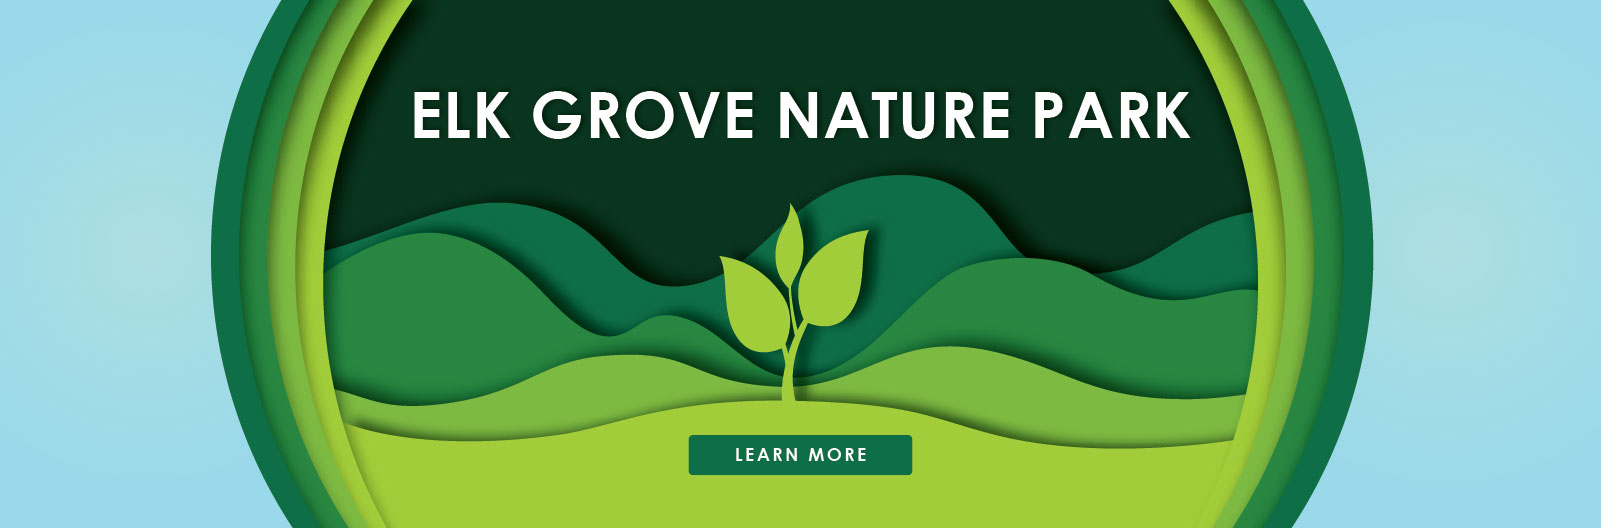 Learn more about Elk Grove Nature Park